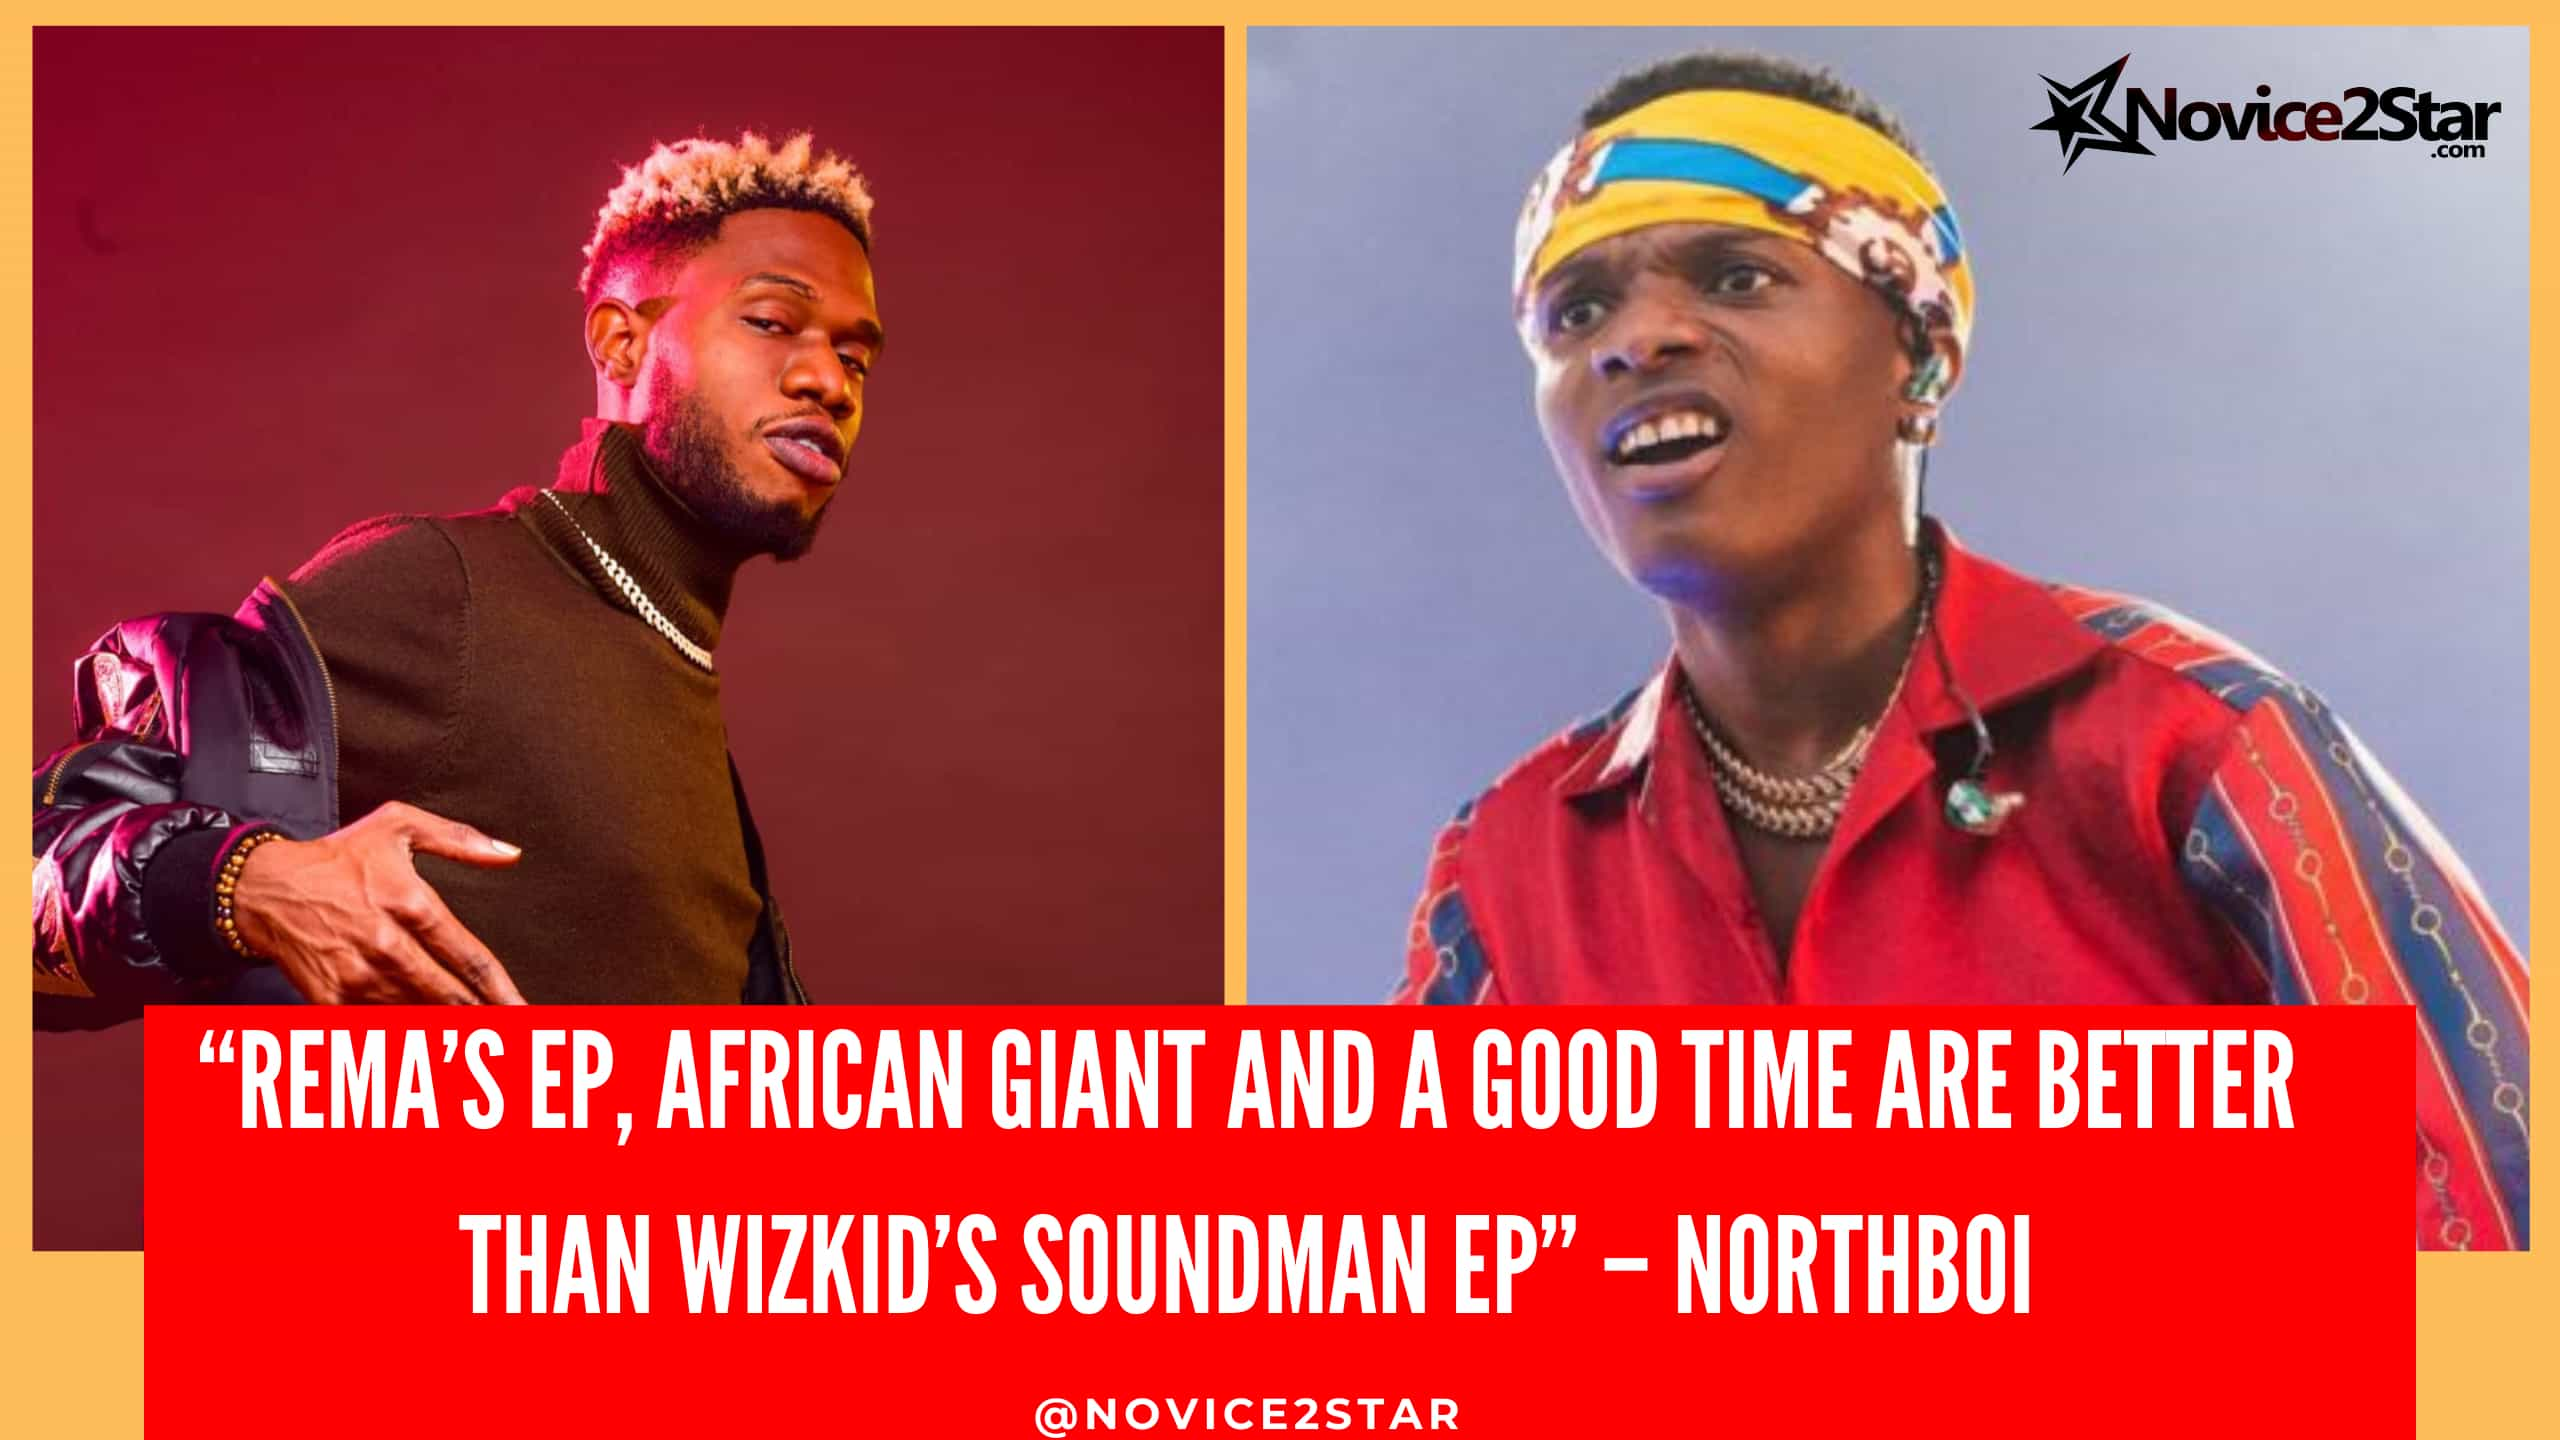 """Rema's EP, African Giant And A Good Time Are Better Than Wizkid's Soundman EP"""" – Northboi"""